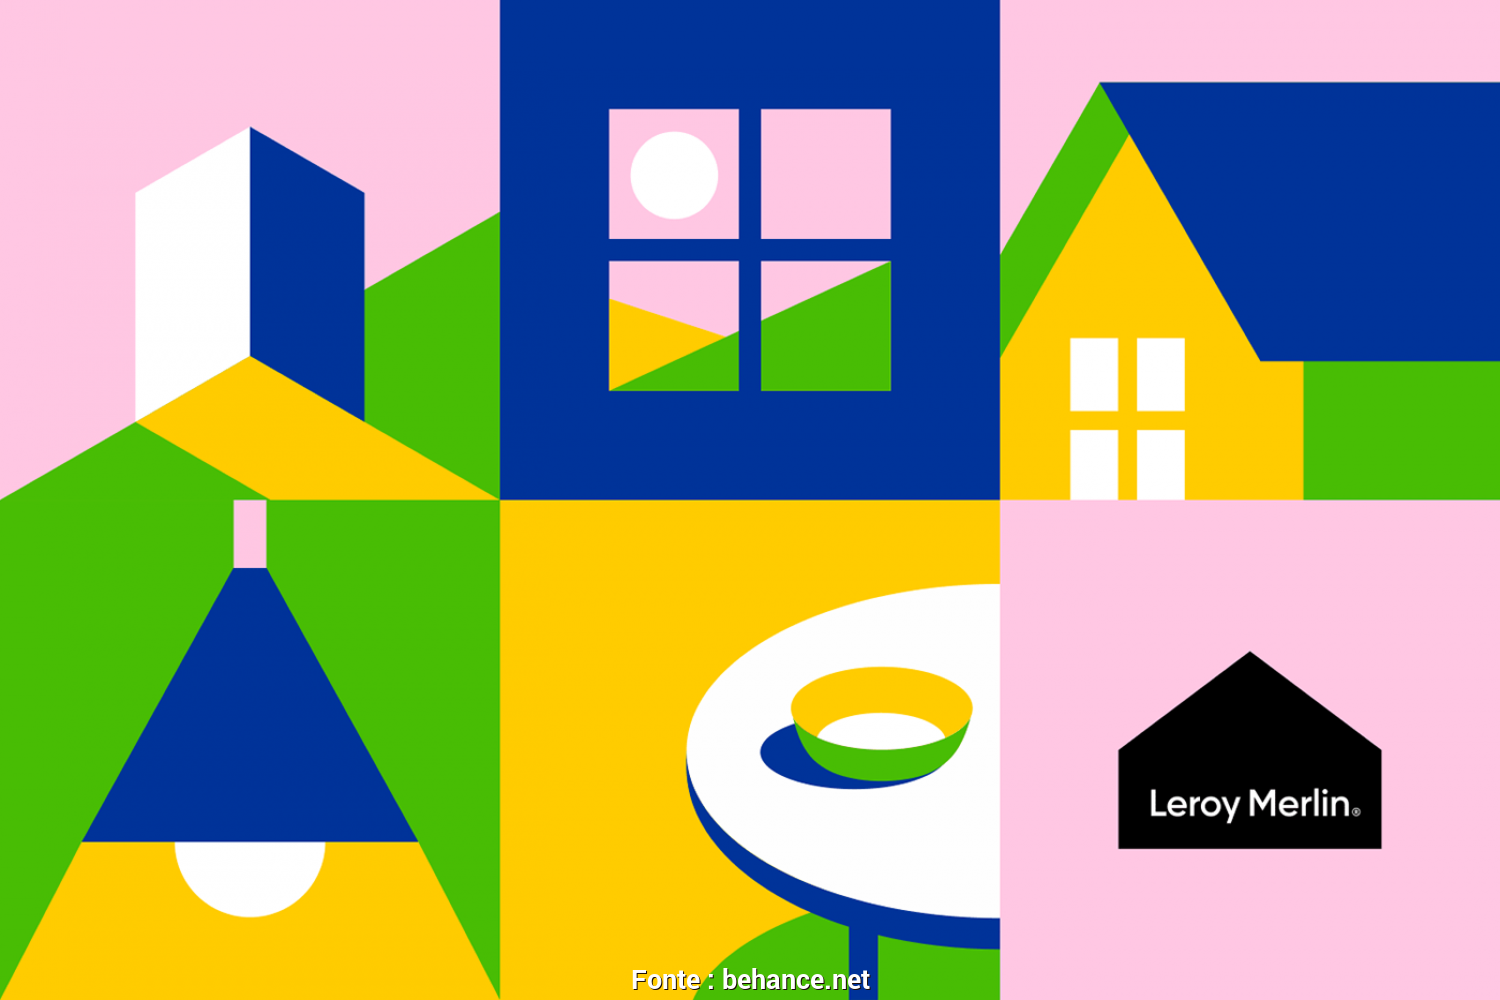 Leroy Merlin Sorocaba Pallet, Favoloso We, Not Limit Ourselves To A Palette Of, Colours As It Used To Be Earlier, We, Not, Too Many Colours To Make, Brand More Capacious And